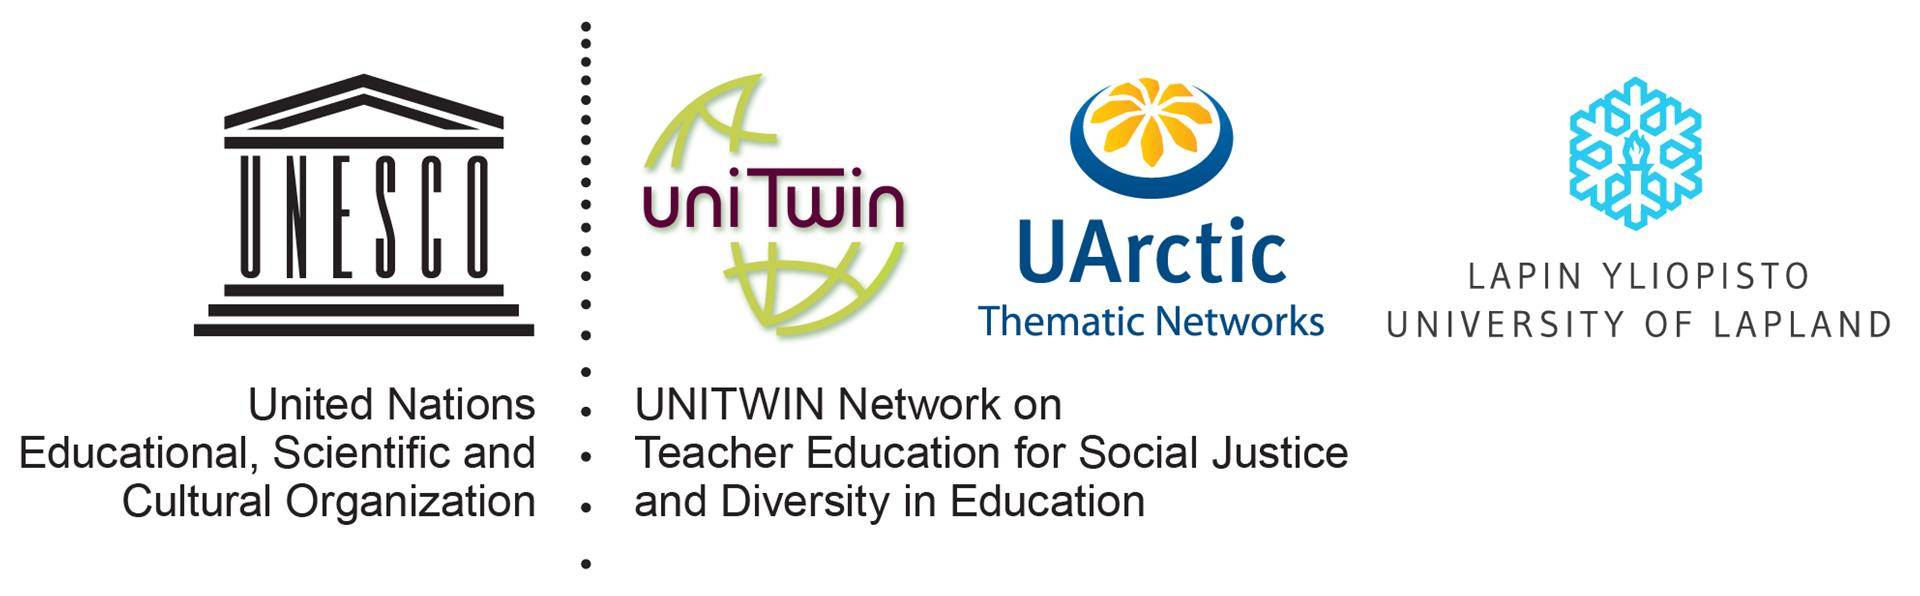 unitwin_network_education_justice_en_uarctic_ulapland_RGB.jpg